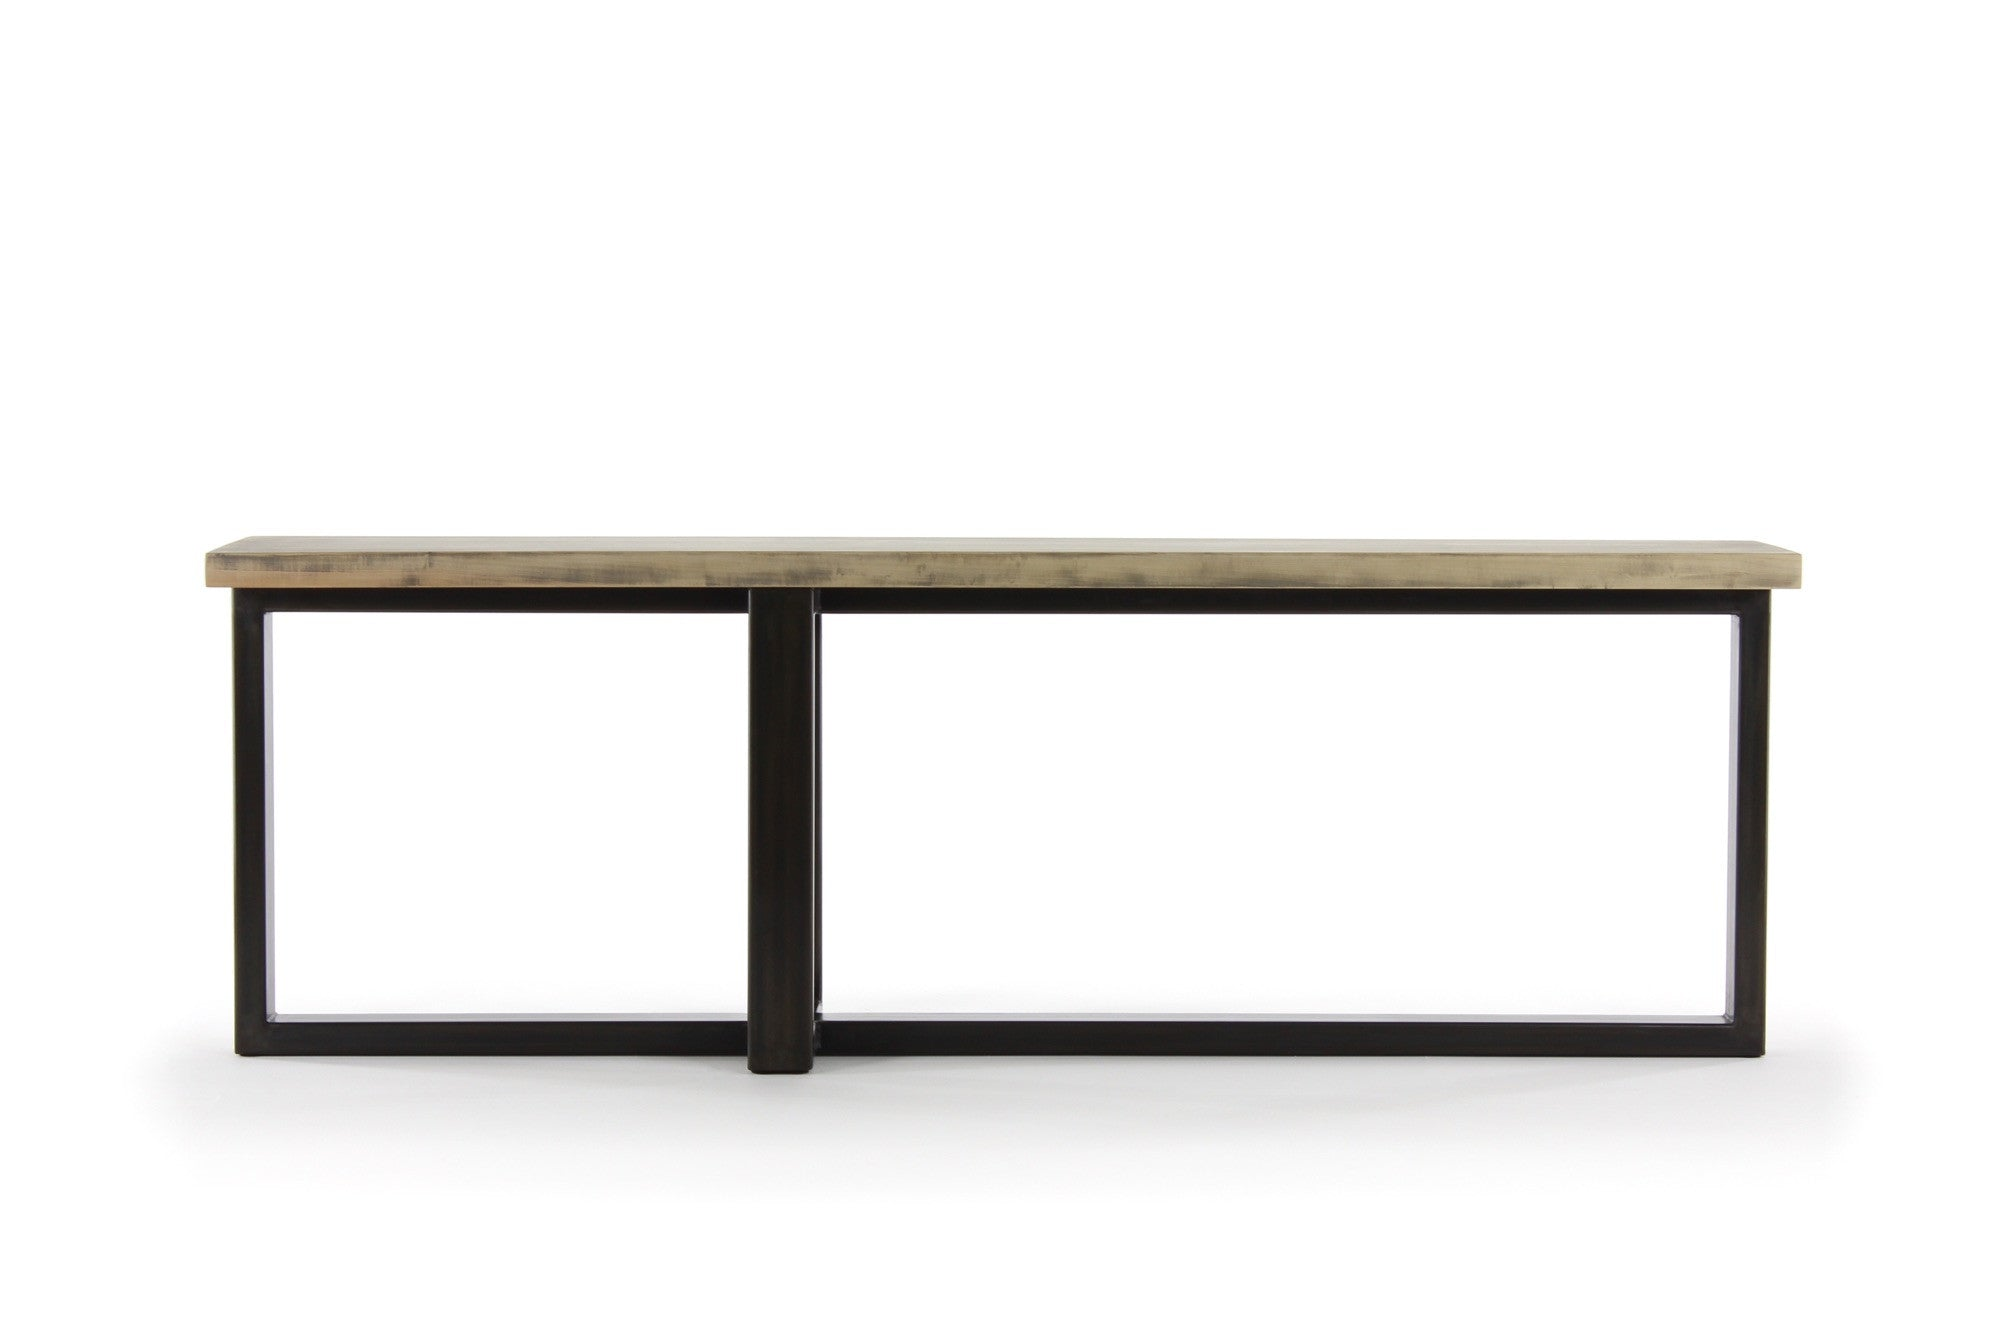 8' concord console table | worn maple wood finish with waxed steel